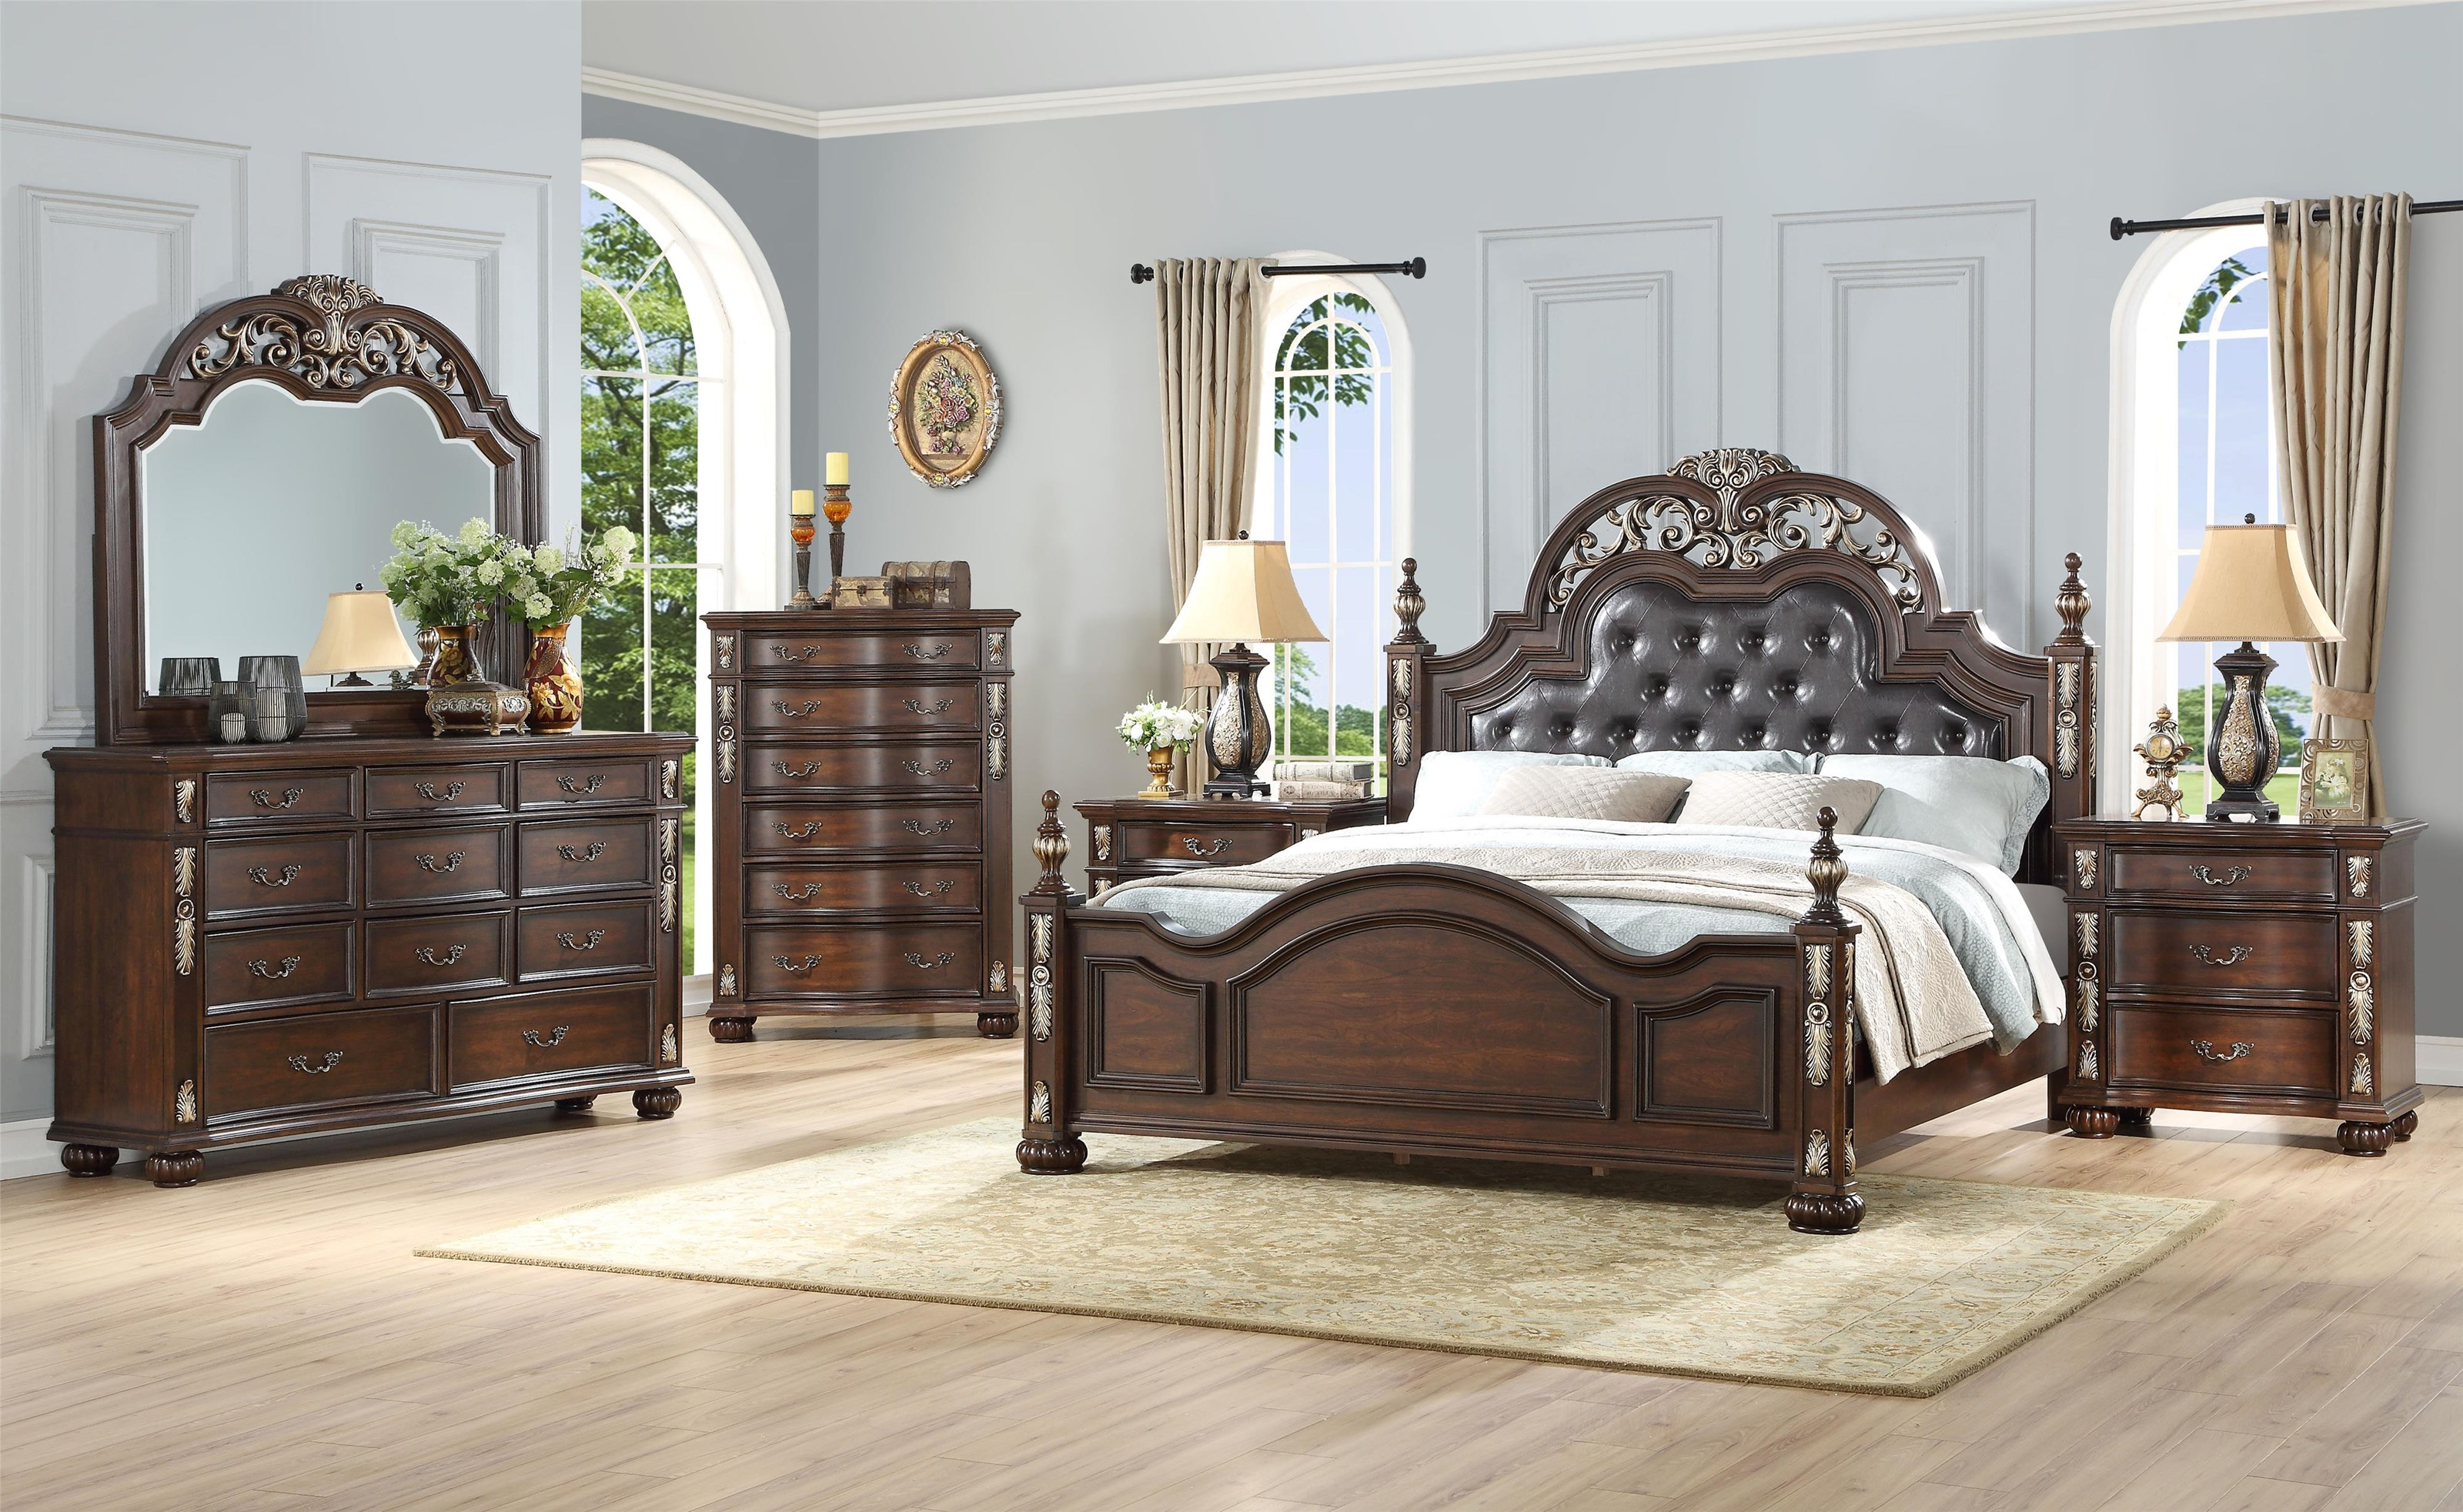 Maximus King Bedroom Group by New Classic at Beck's Furniture